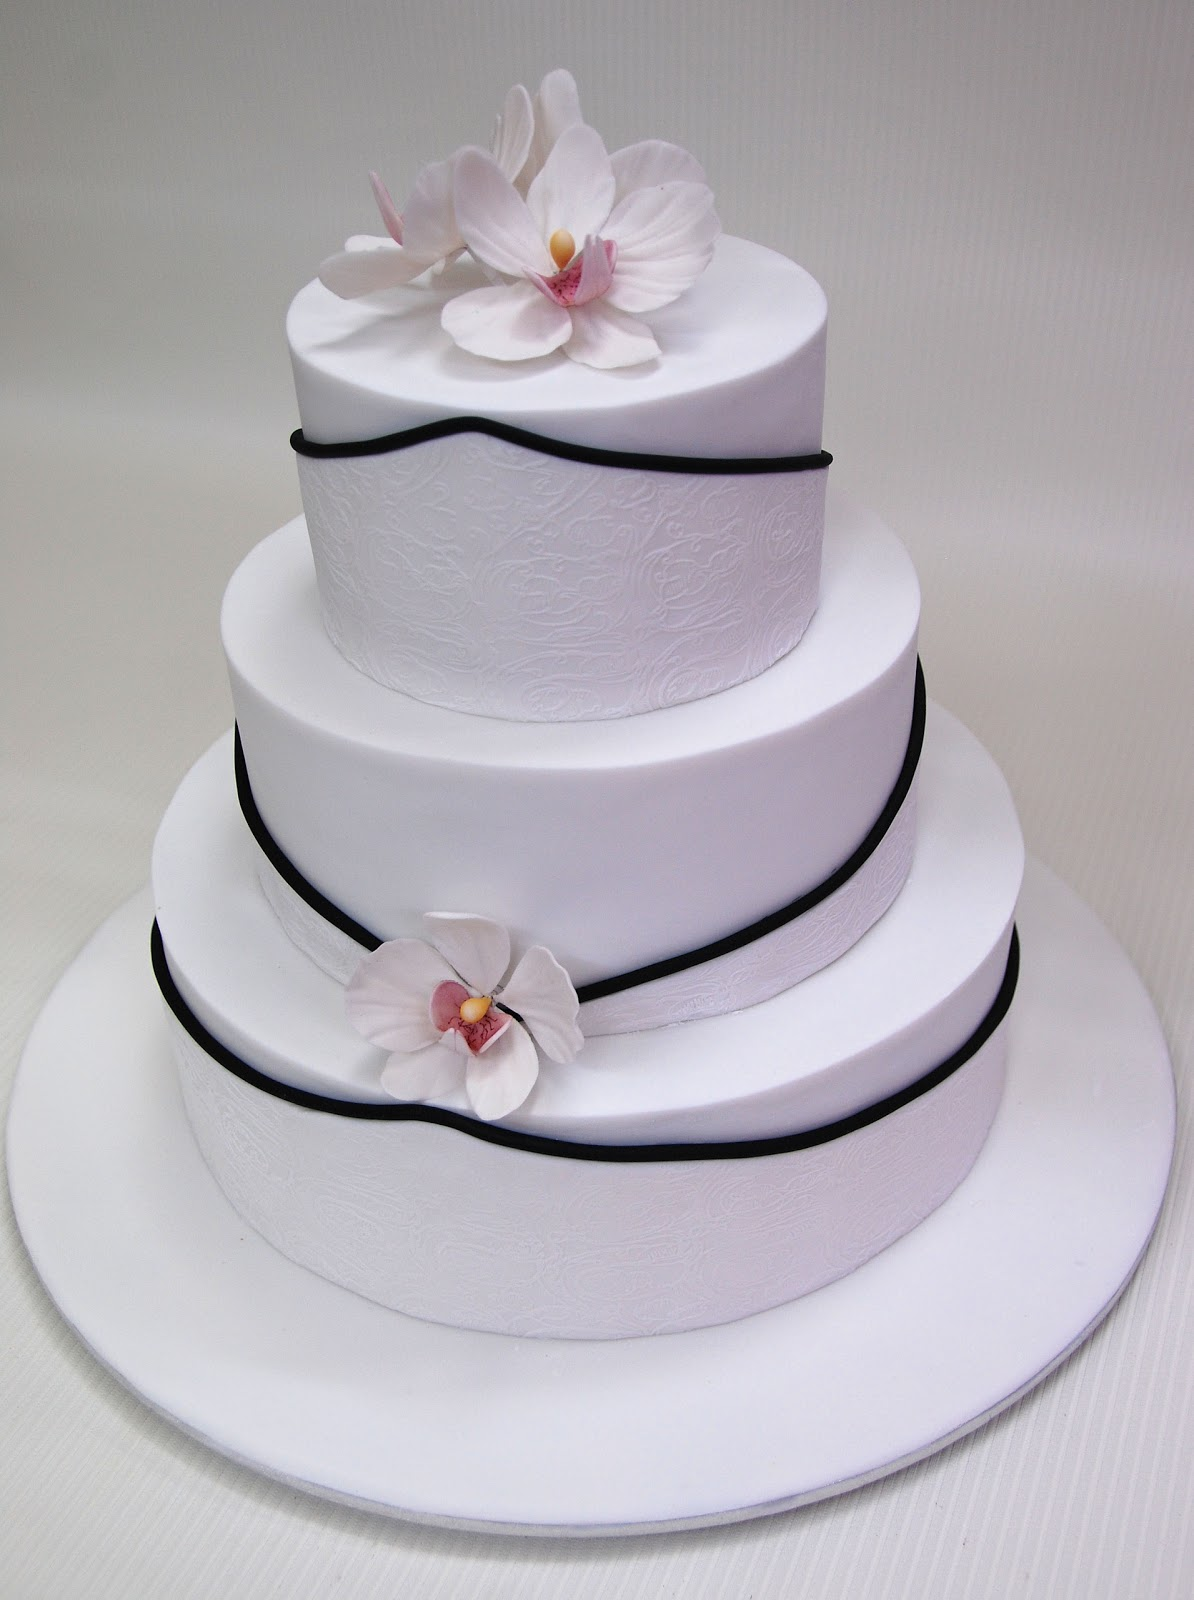 Little Robin 3 Tier Wedding Cake with Orchids